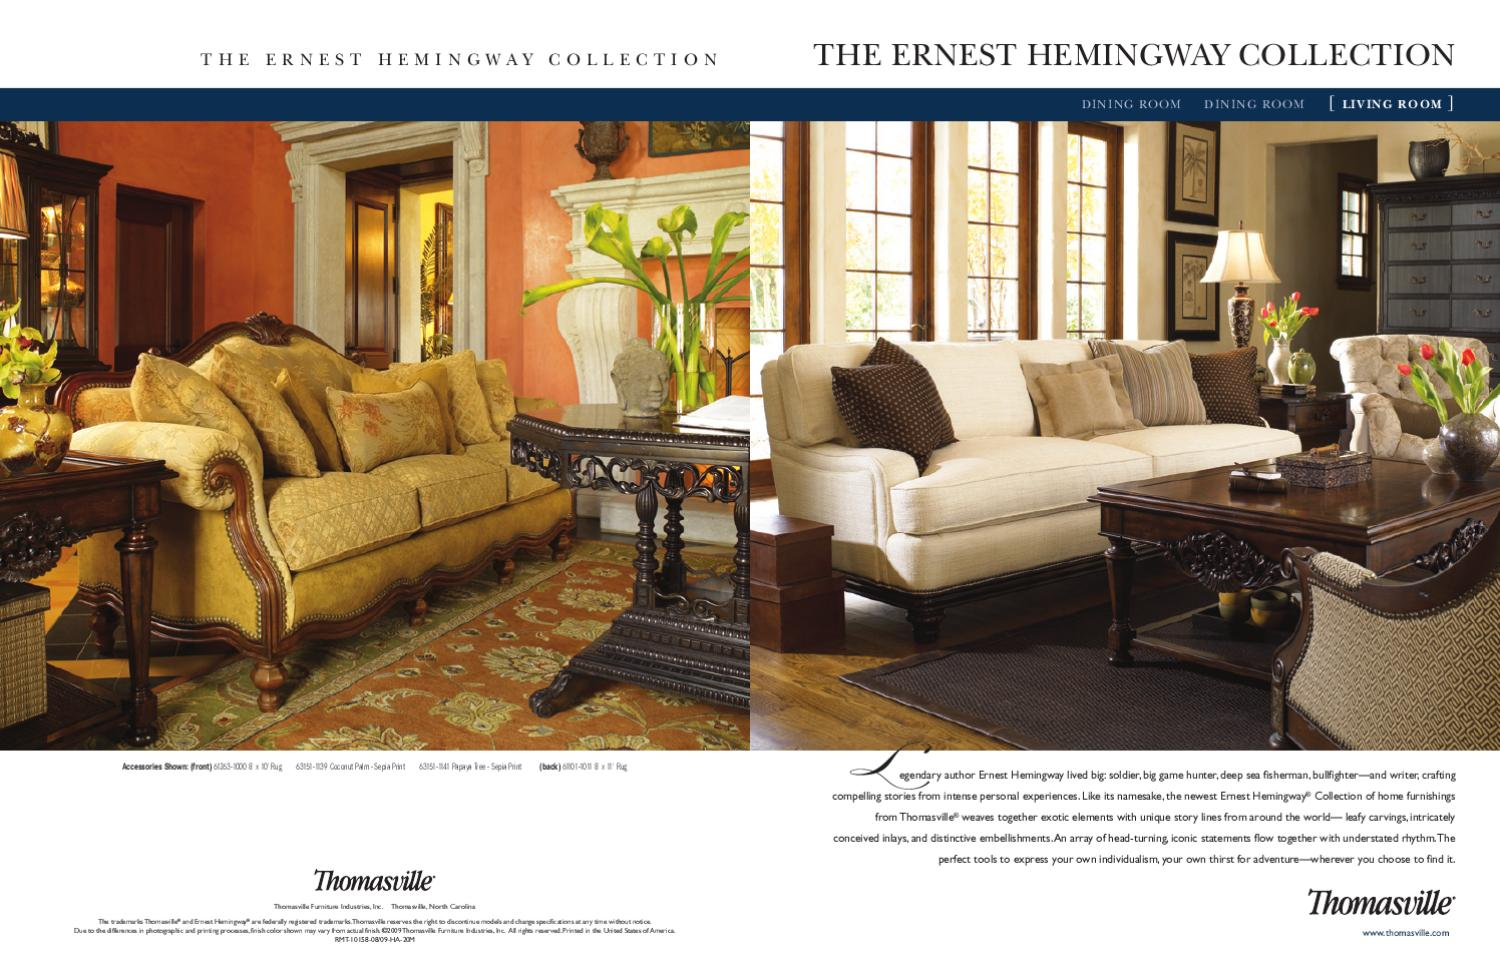 Thomasville The Ernest Hemingway Collection Living Room